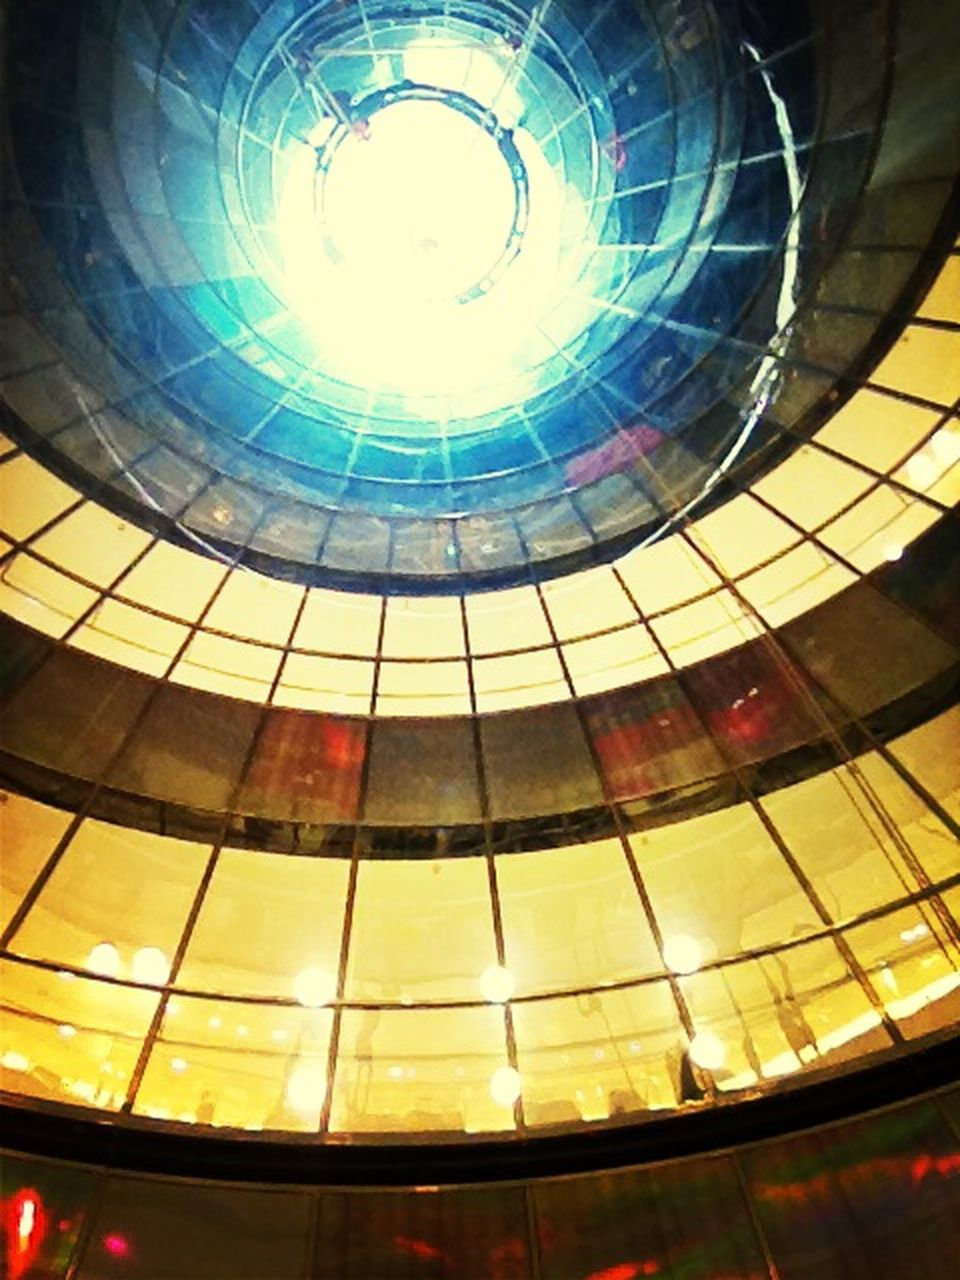 architecture, low angle view, built structure, sunlight, lens flare, fish-eye lens, indoors, sun, building exterior, no people, sky, dome, modern, day, city, close-up